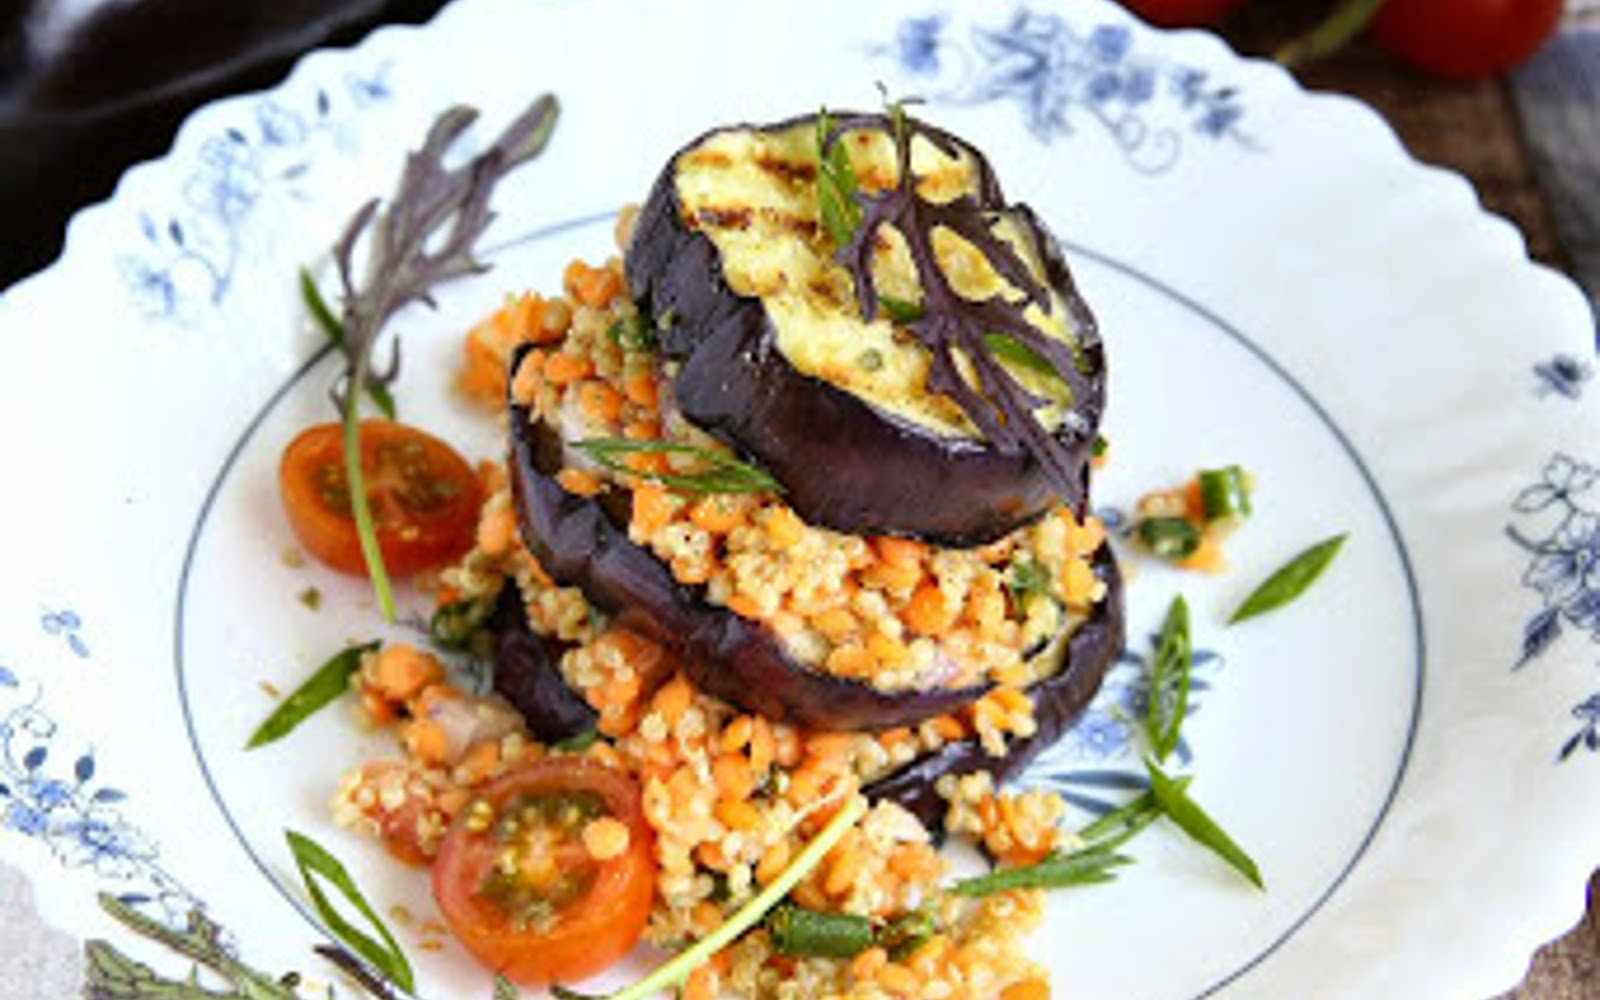 Roasted Eggplant Stacks With Red Lentils